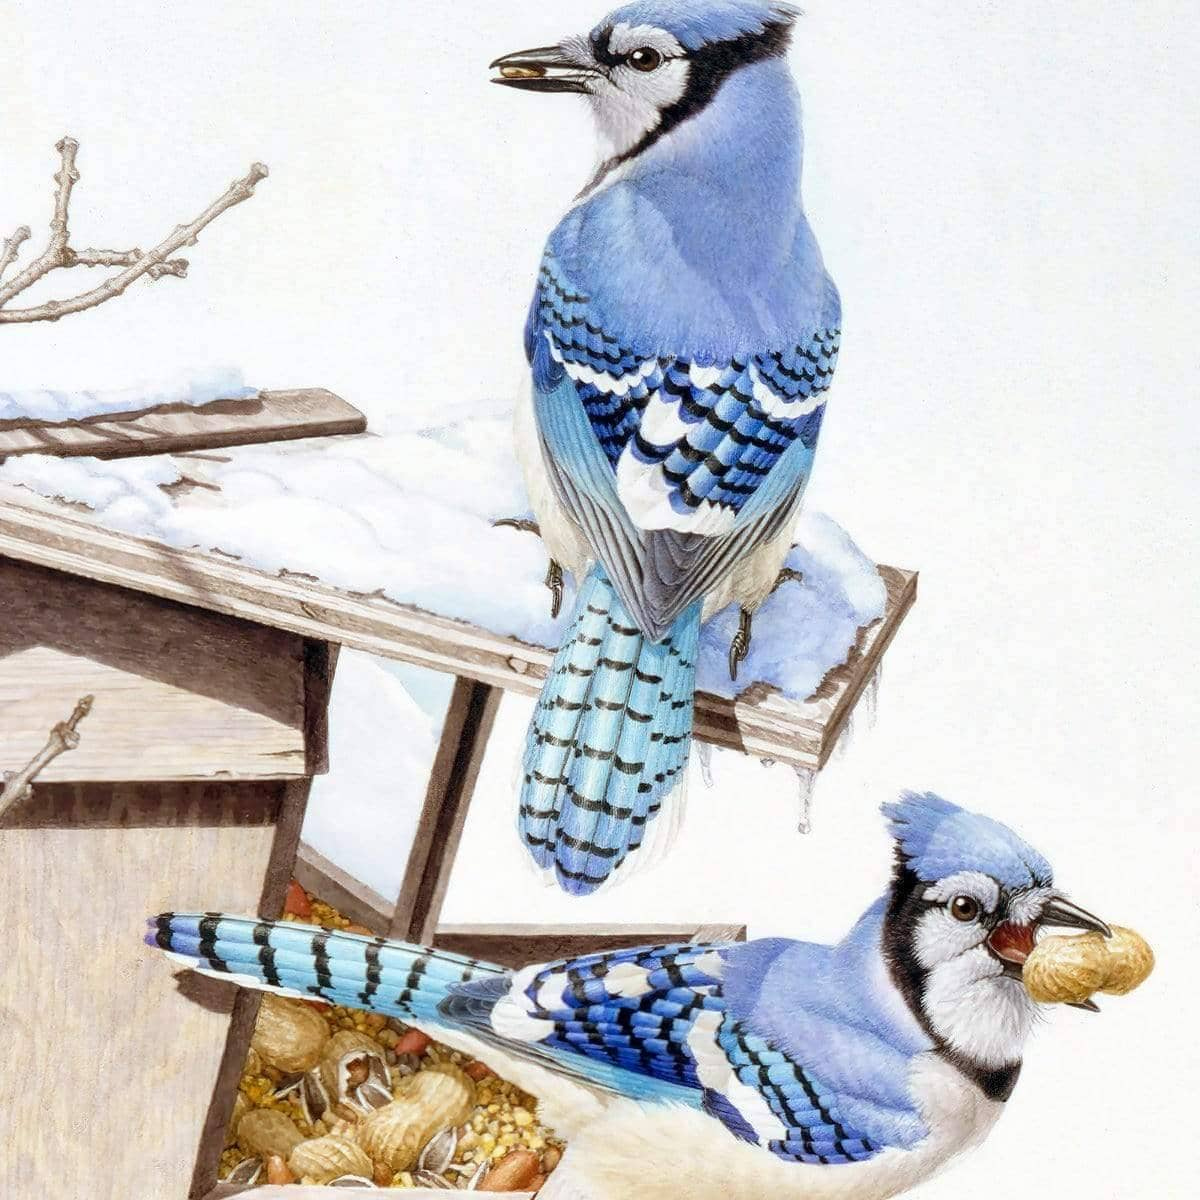 Blue Jays At My Feeder - Art Print by Glen Loates from the Glen Loates Store